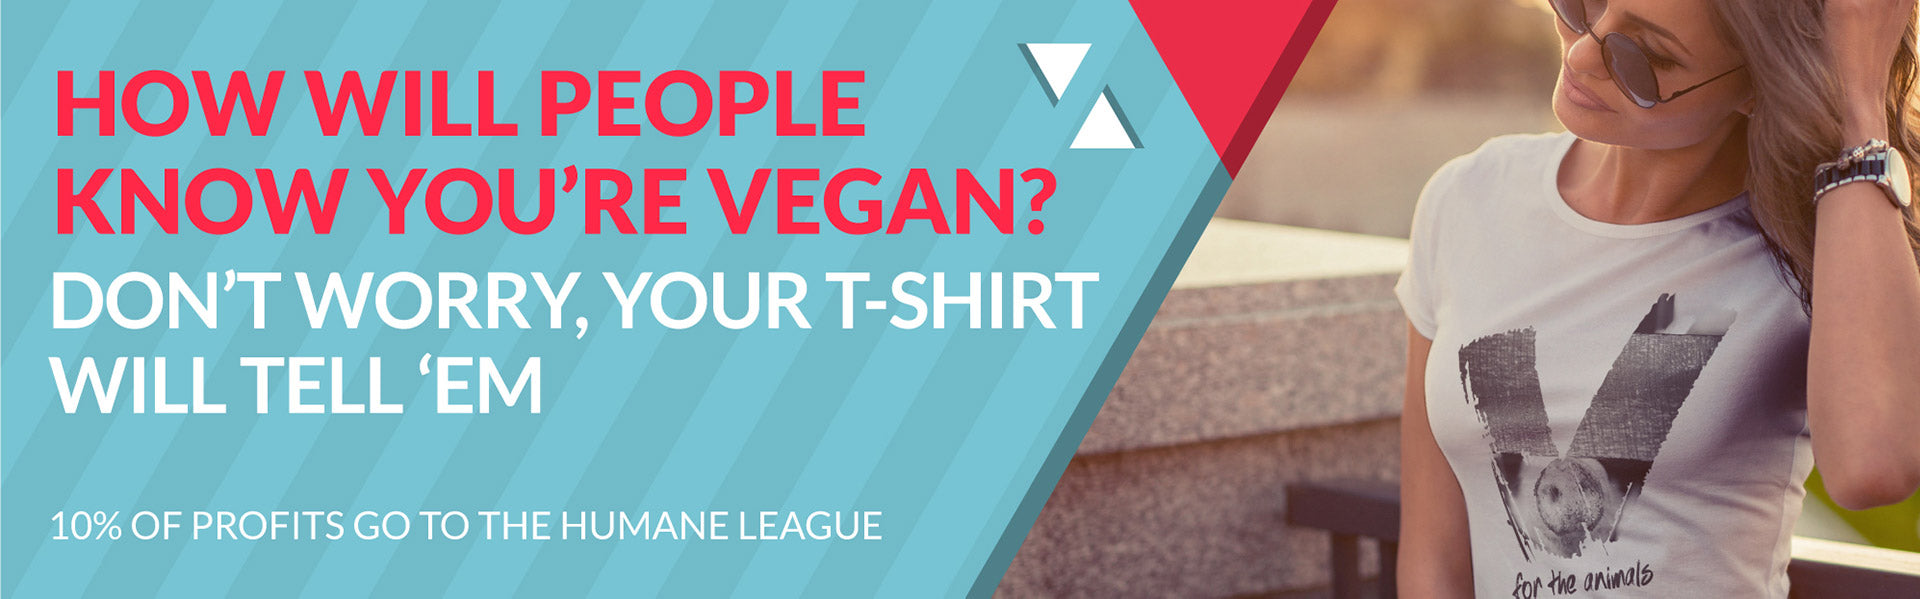 Fun and positive vegan t-shirts from boss vegan. Spread the love!